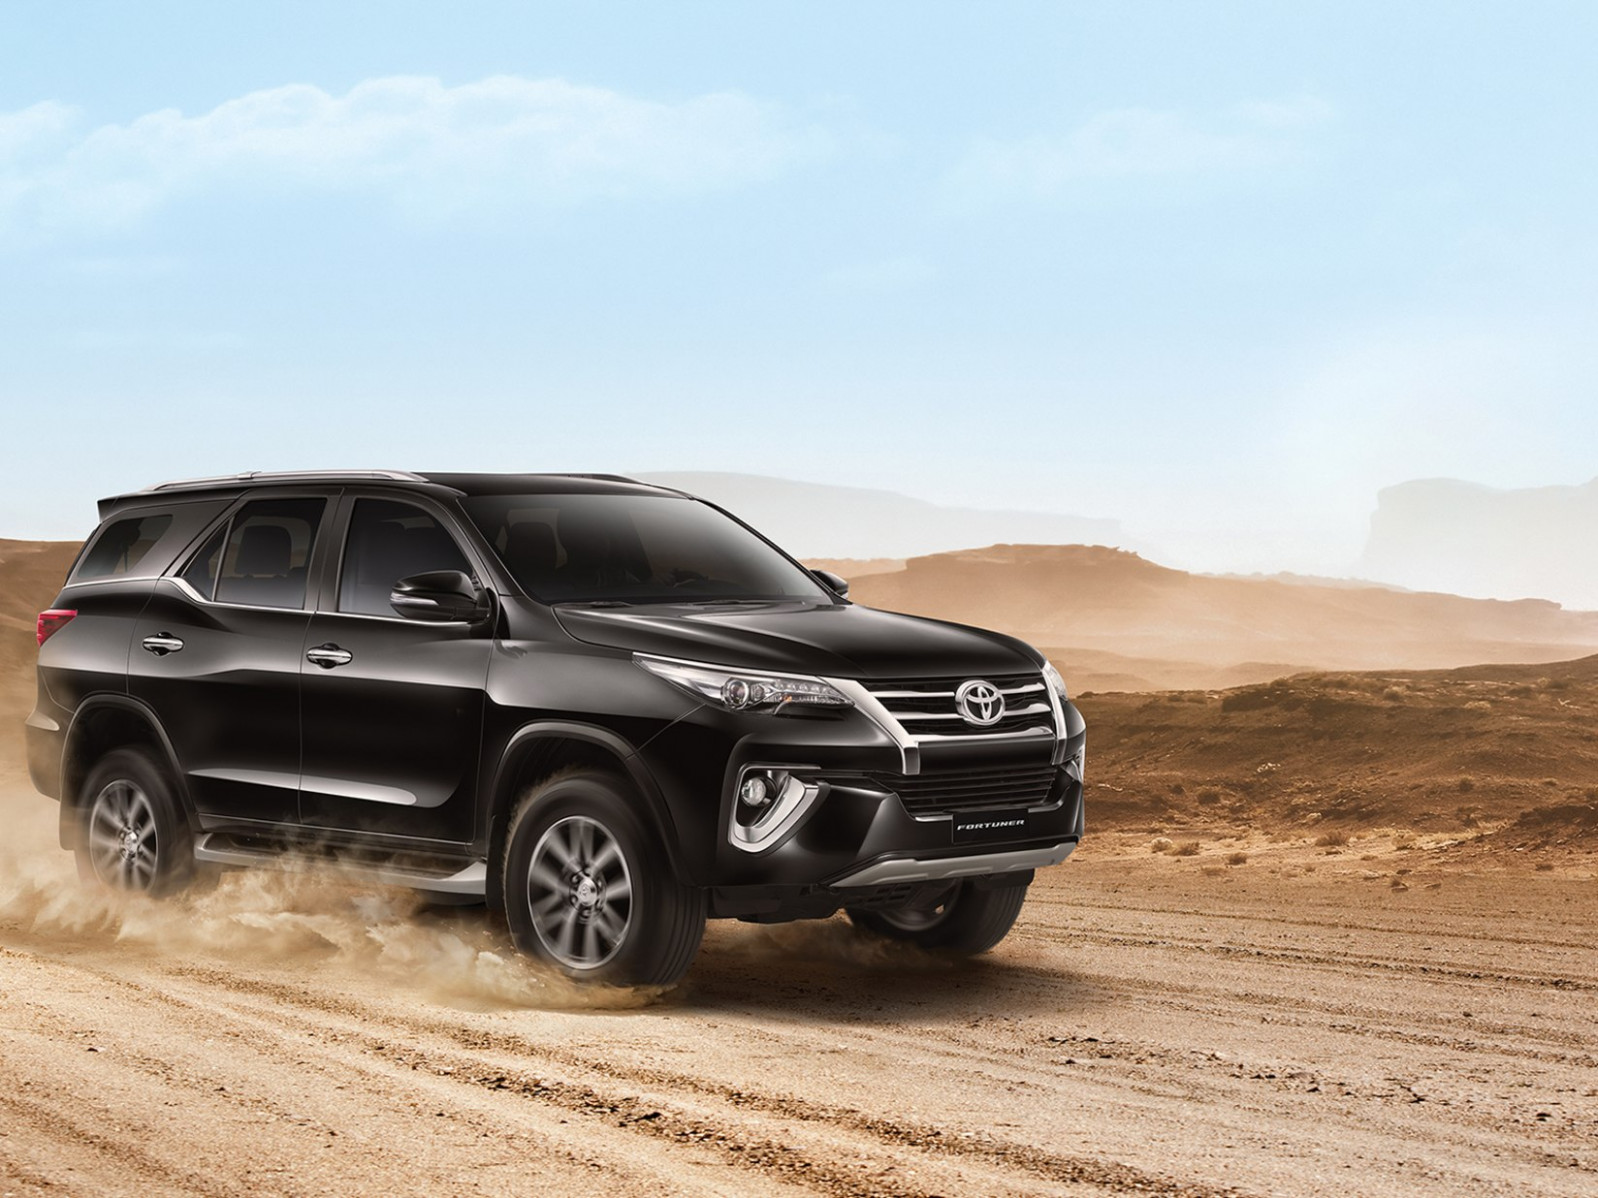 New Toyota Fortuner 7 Cars for Sale in the UAE | Toyota - toyota fortuner 2020 interior